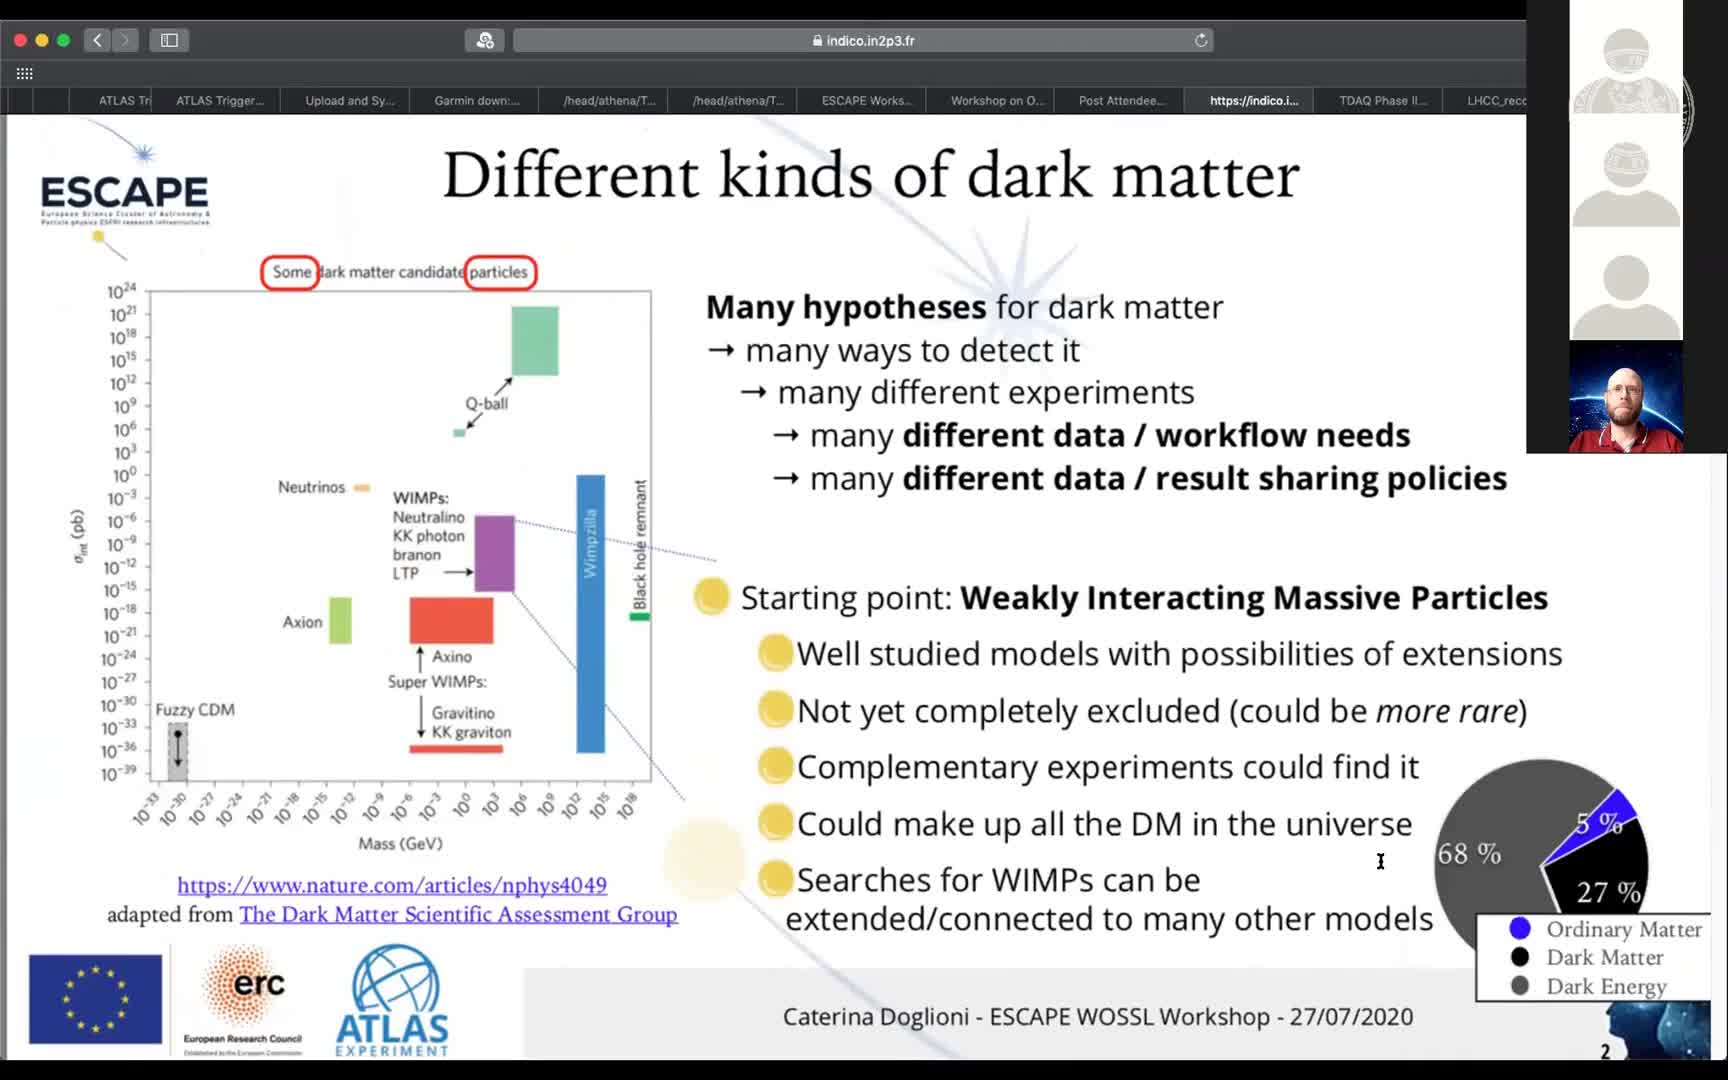 The ESCAPE Test Science Project: Dark Matter and How to Involve the Community preview image